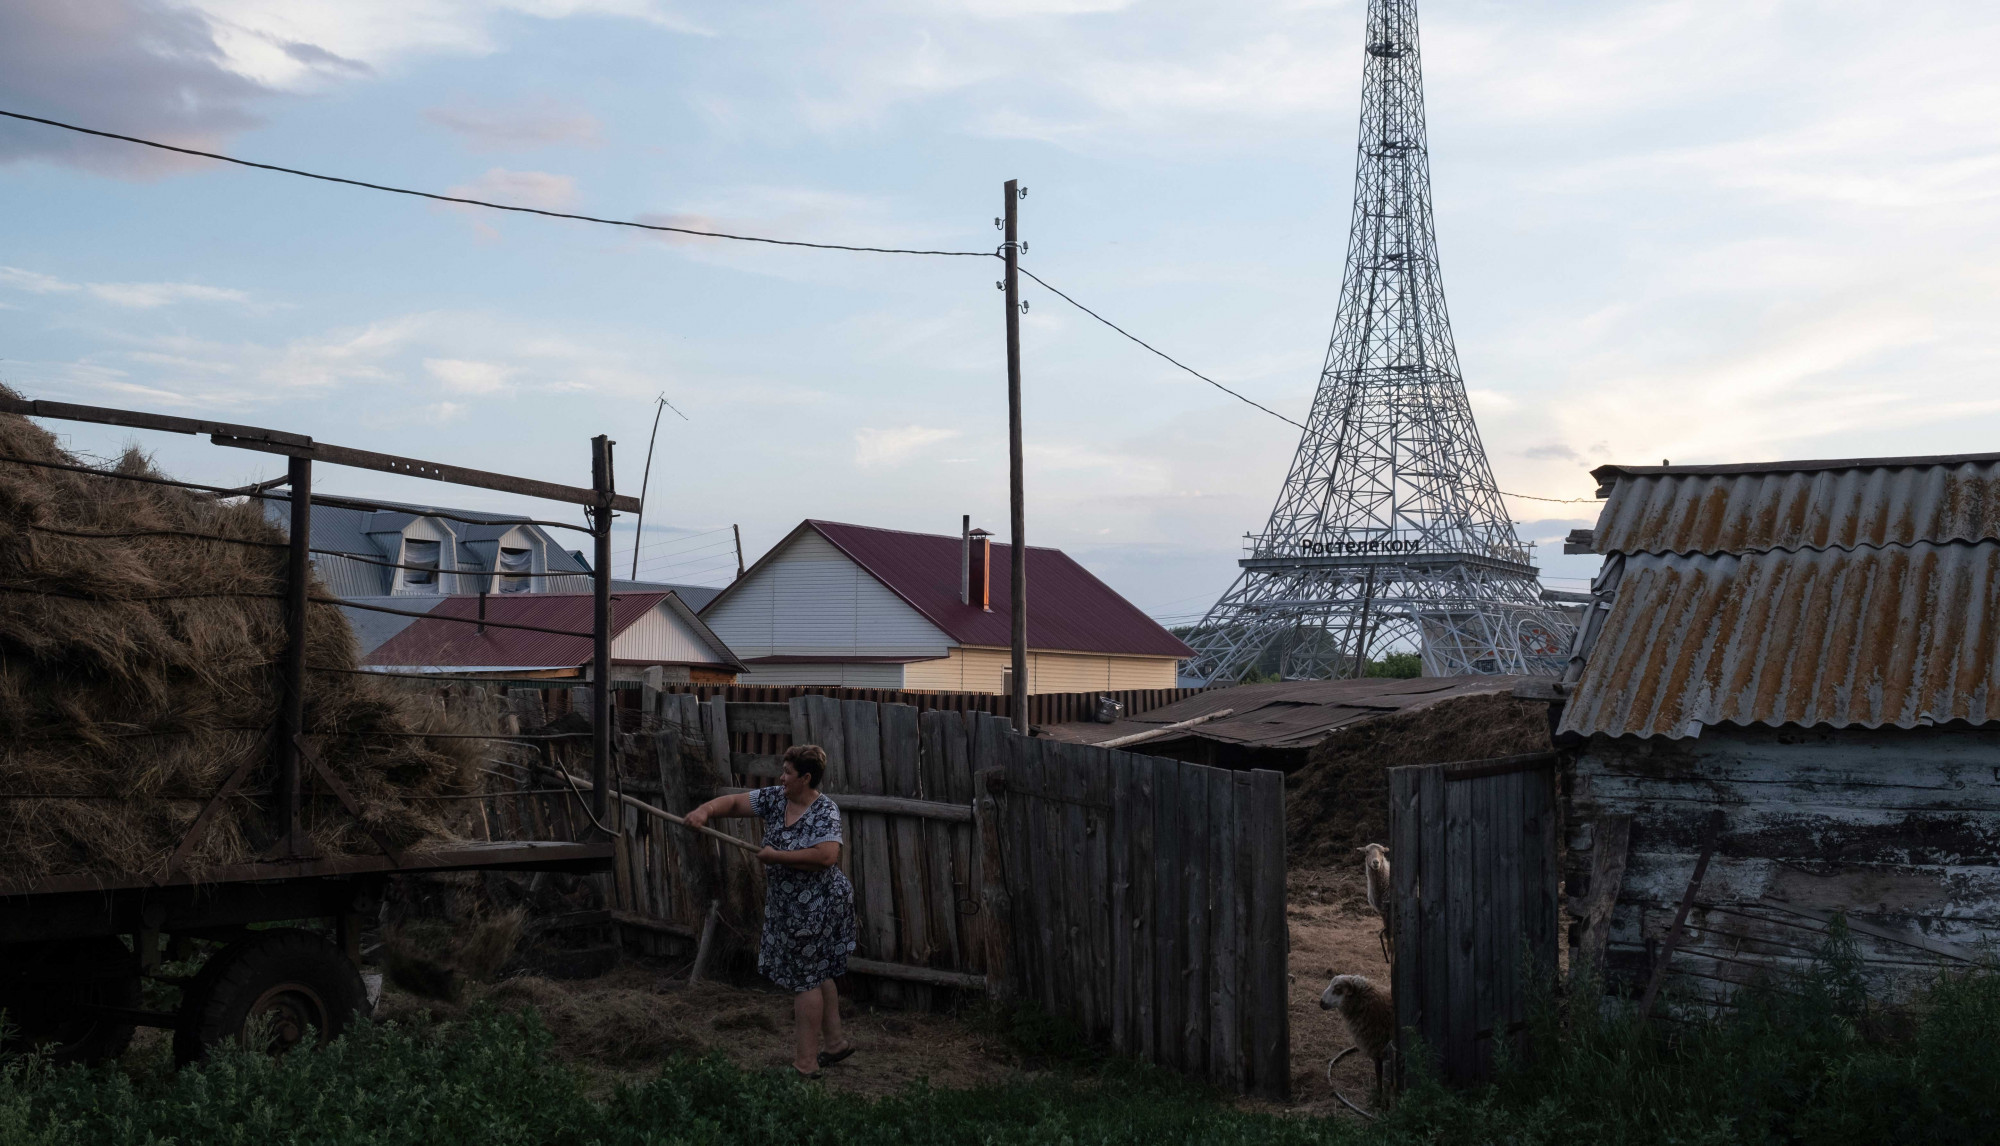 Bonjour, Parizh: I visited the Russian village with its very own Eiffel Tower